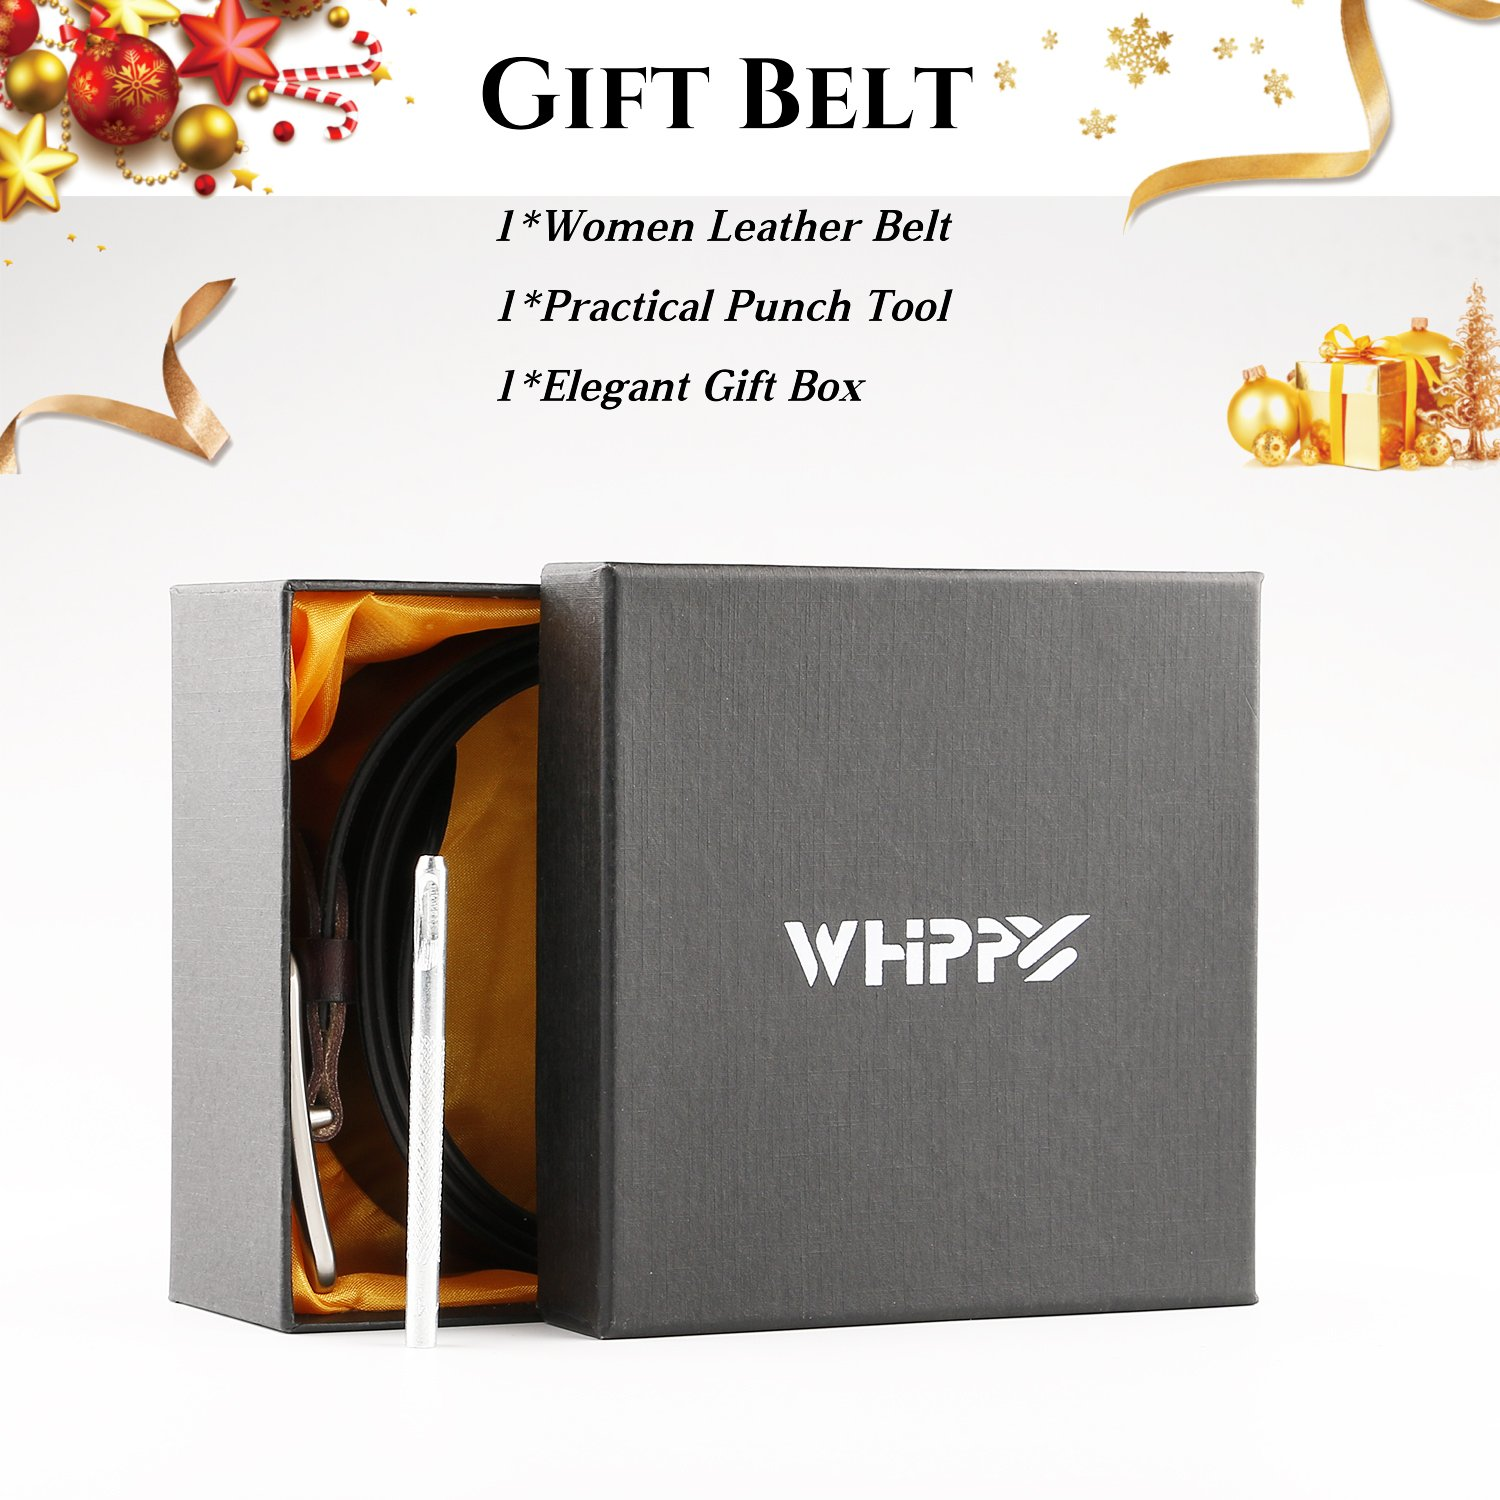 WHIPPY New Arrival Jeans Belt for Women Genuine Leather Belt with Pin Buckle, Black, 1.3''wide, Suit Pant Size 25''-29'' by Whippy (Image #6)